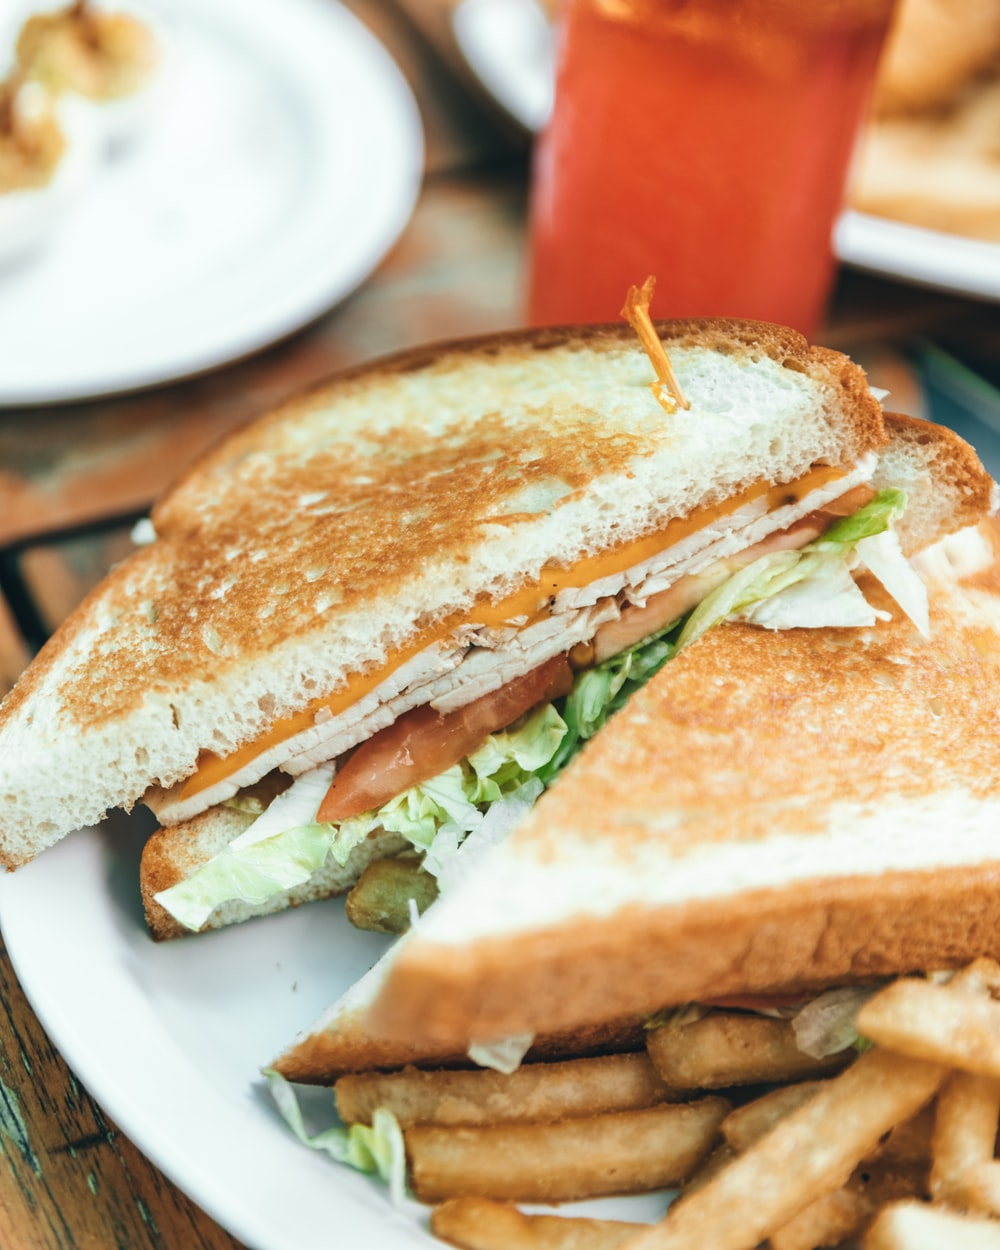 selective focus photo of toasted bread with coleslaw and fries on white plate